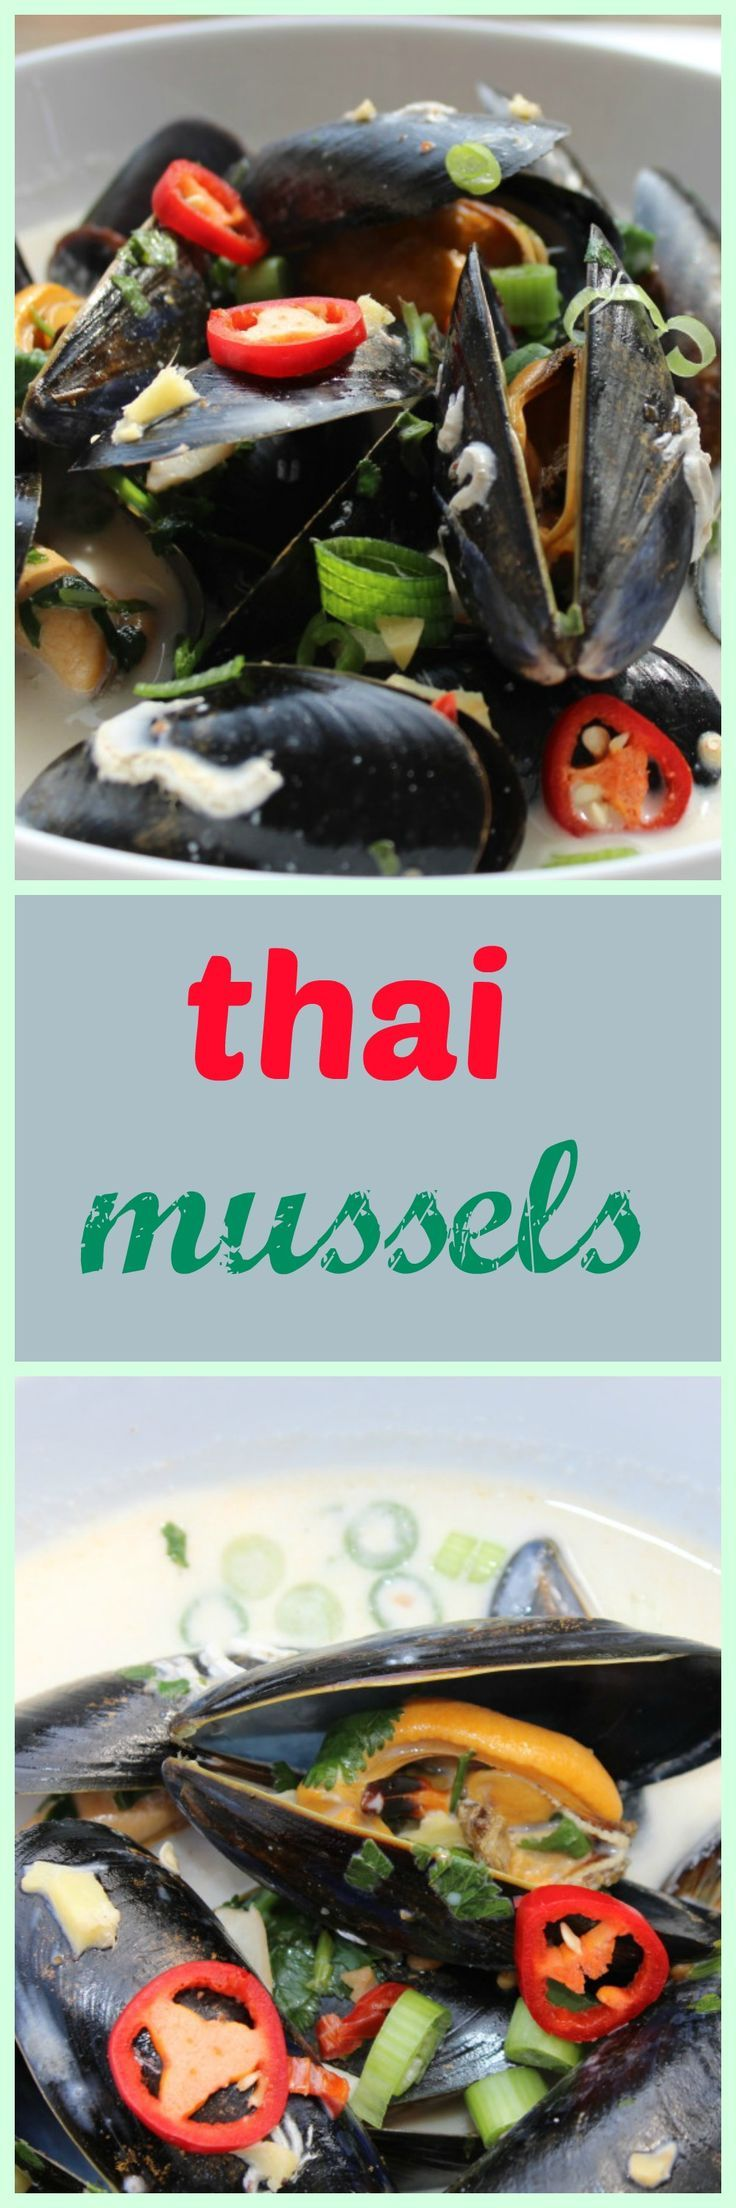 148 best Seafood images on Pinterest